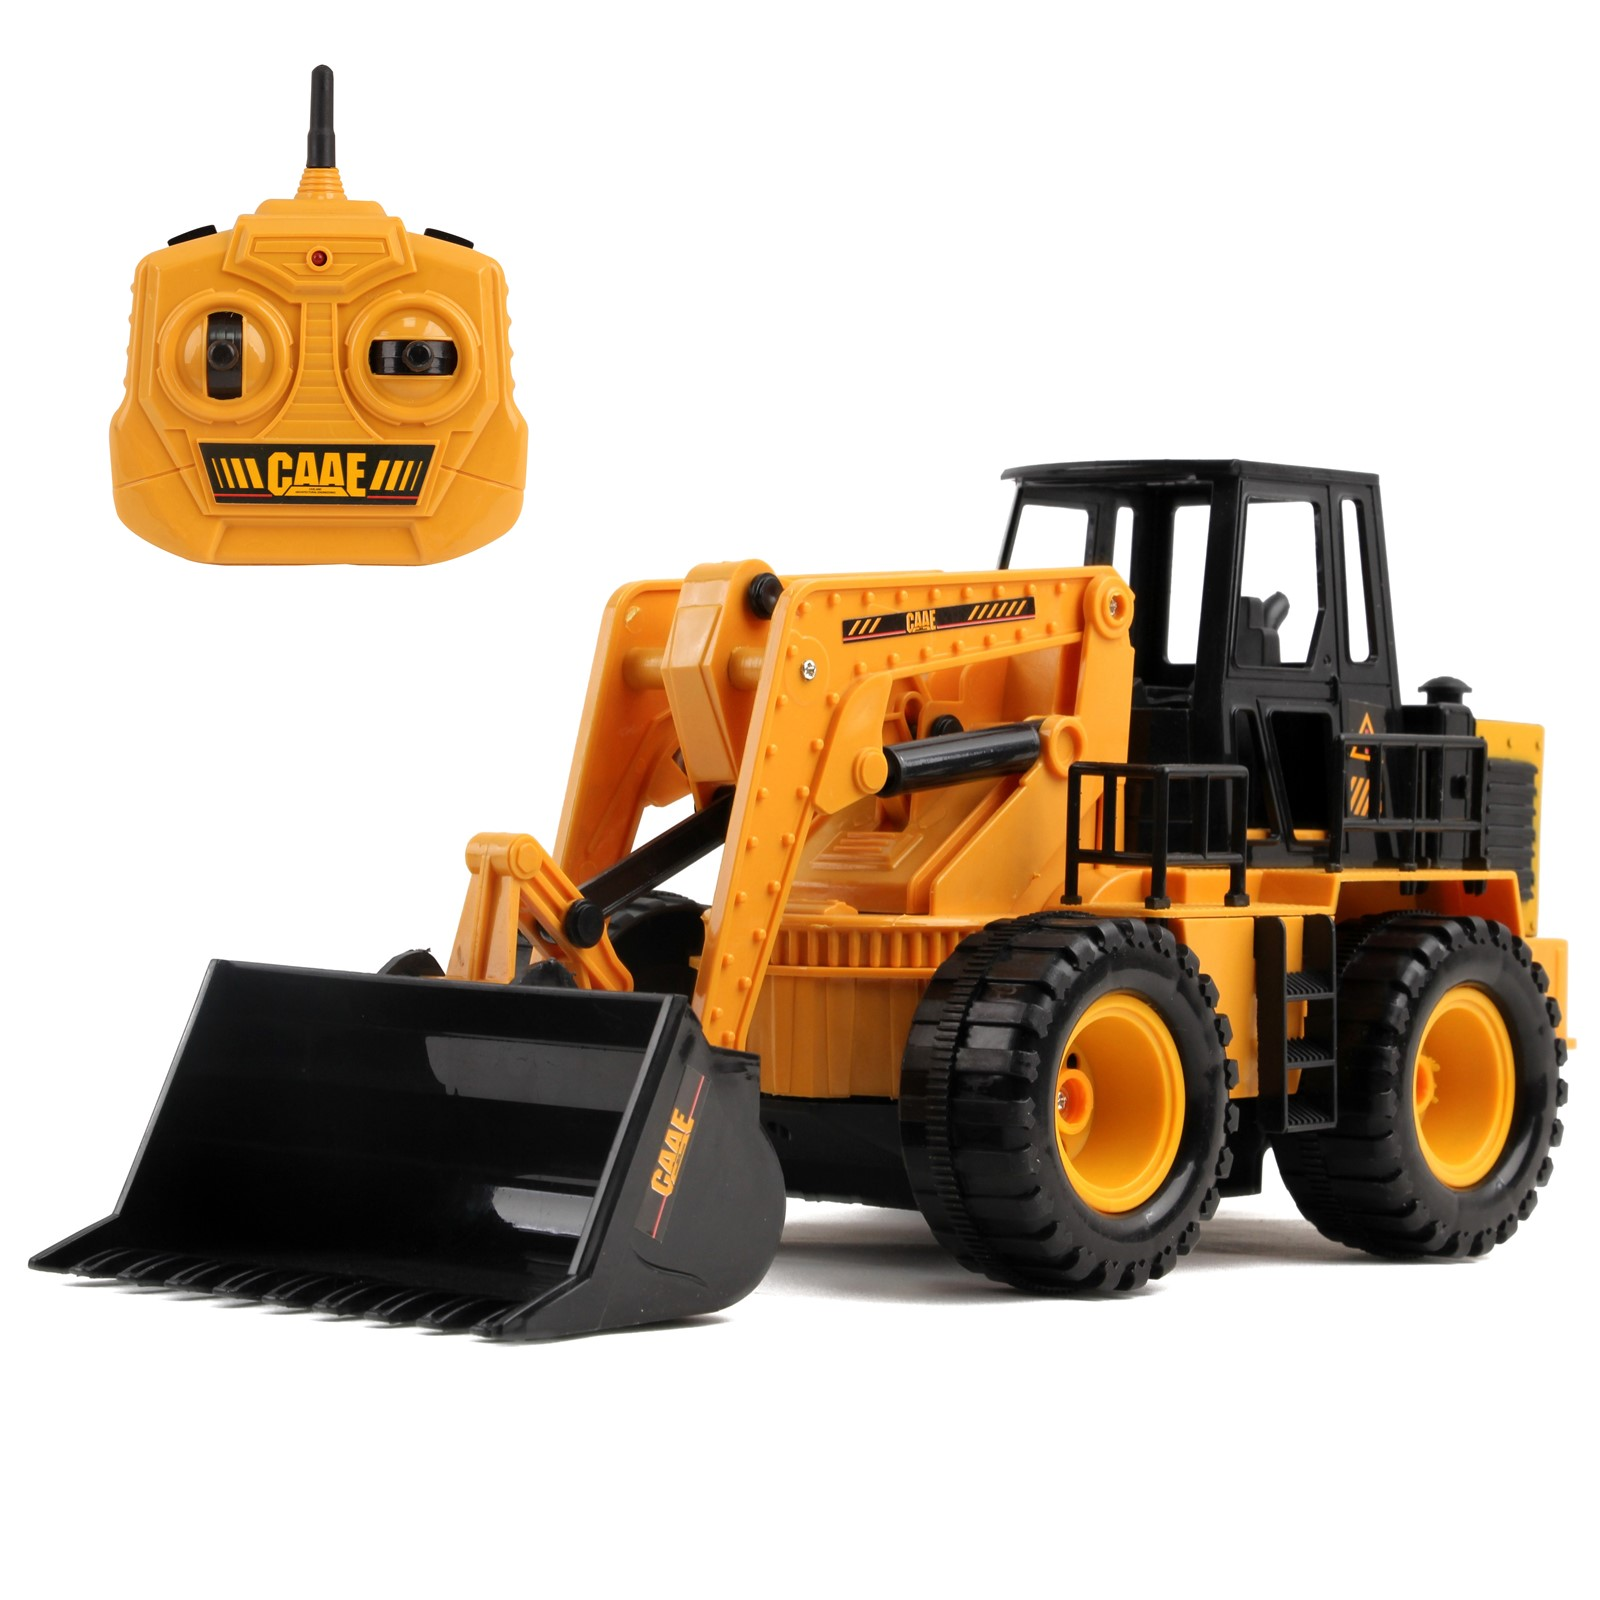 Full Functional RC Bulldozer 1:24 Scale 2.4Ghz Construction Toy Tractor Truck Electric Remote Control Radio Digger Car Ready To Run RTR Perfect Vehicle Gift For Kids